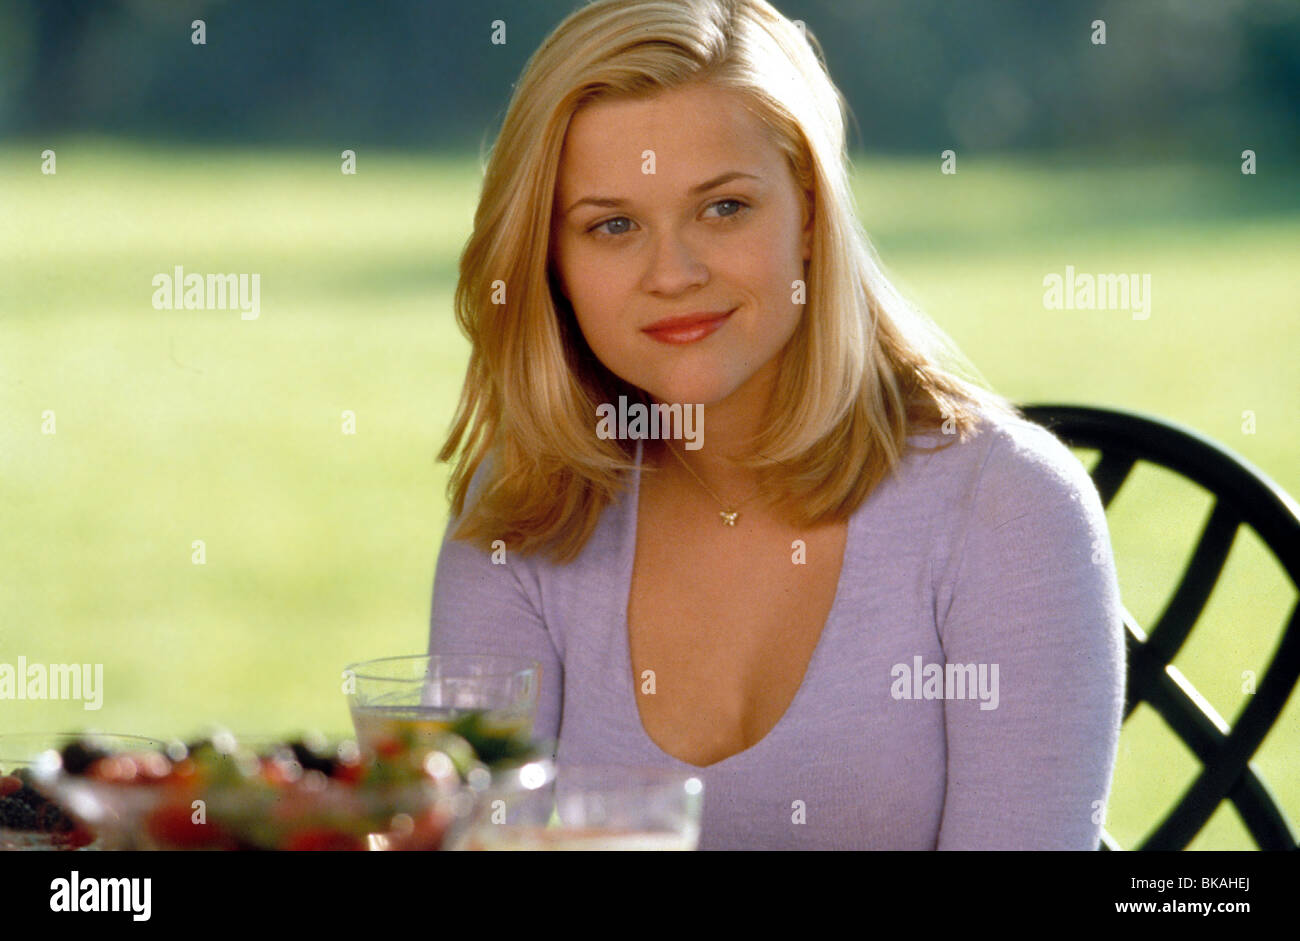 CRUEL INTENTIONS (1999) REESE WITHERSPOON CRIN 006 - Stock Image